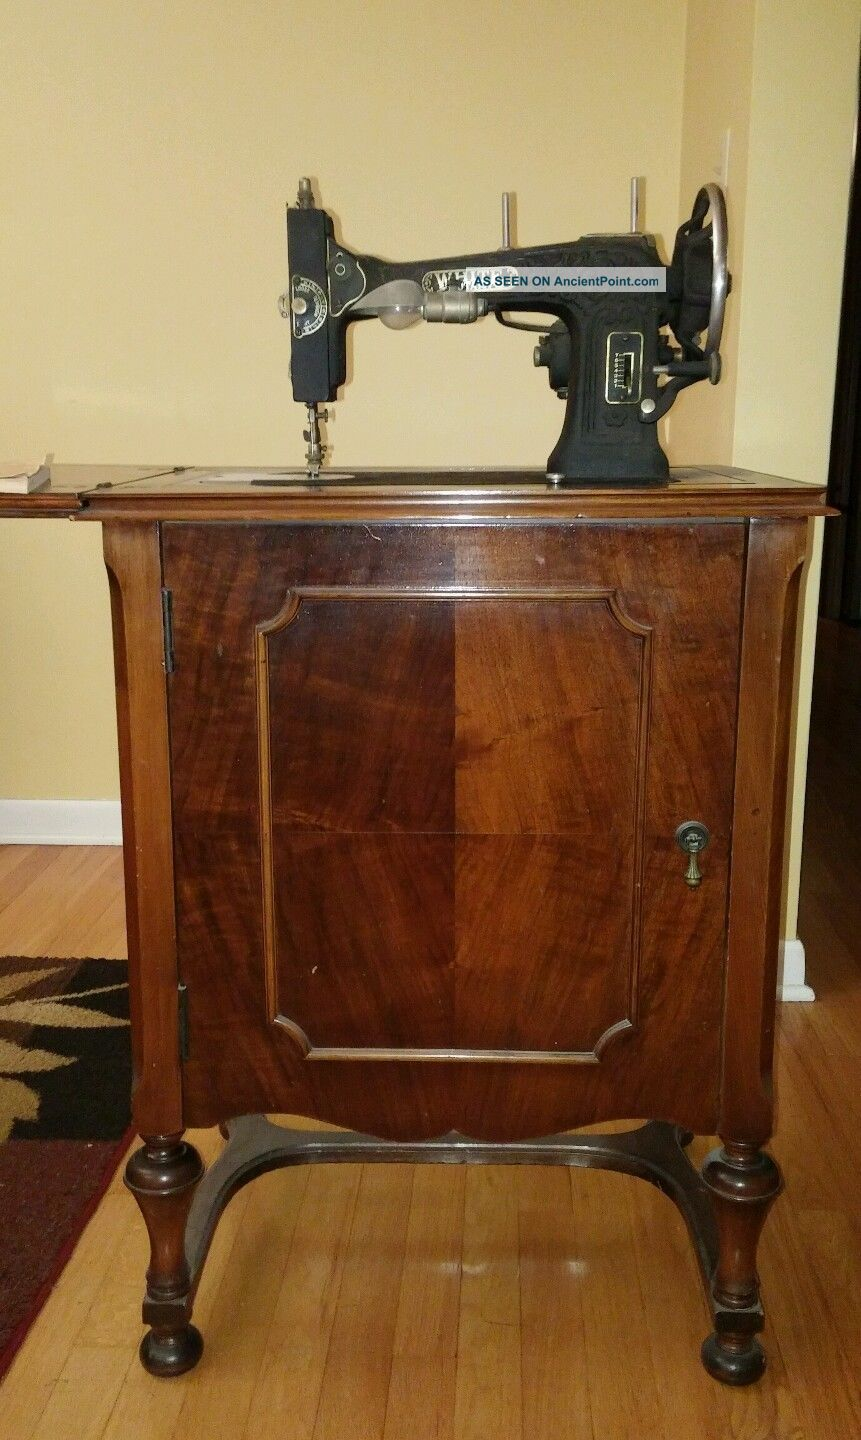 1929 White - Rotary Electric Sewing Machine In Wood Cabinet - Sewing Machines photo